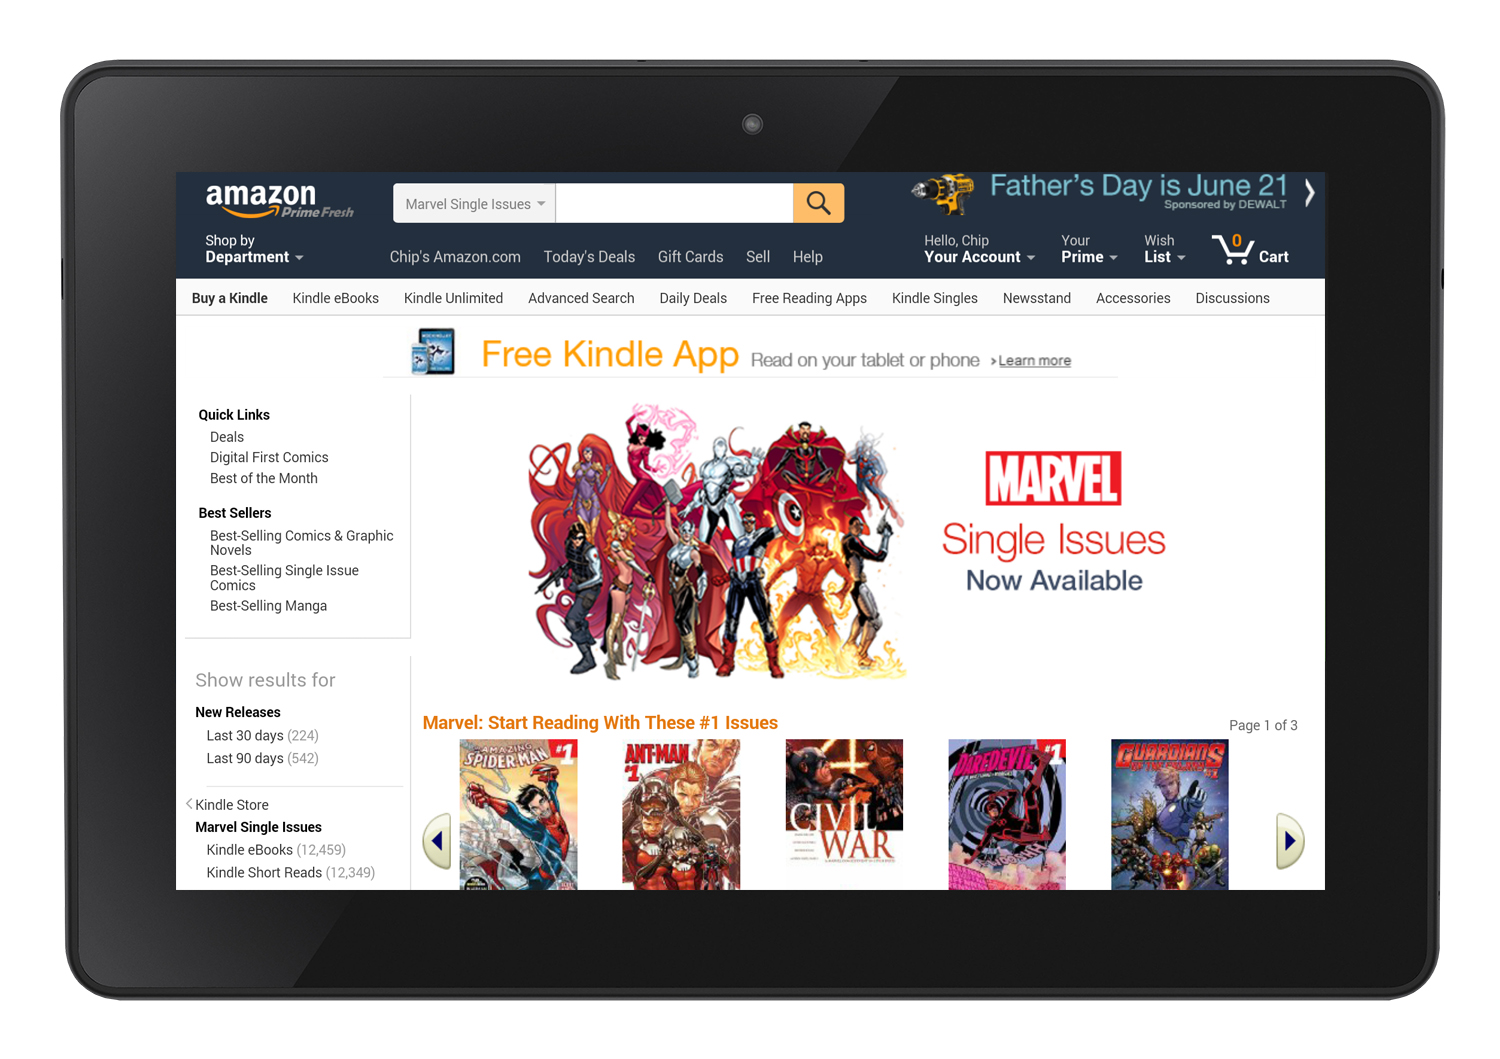 Marvel Renews Digital Comics Agreement with ComiXology and Expands to Amazon